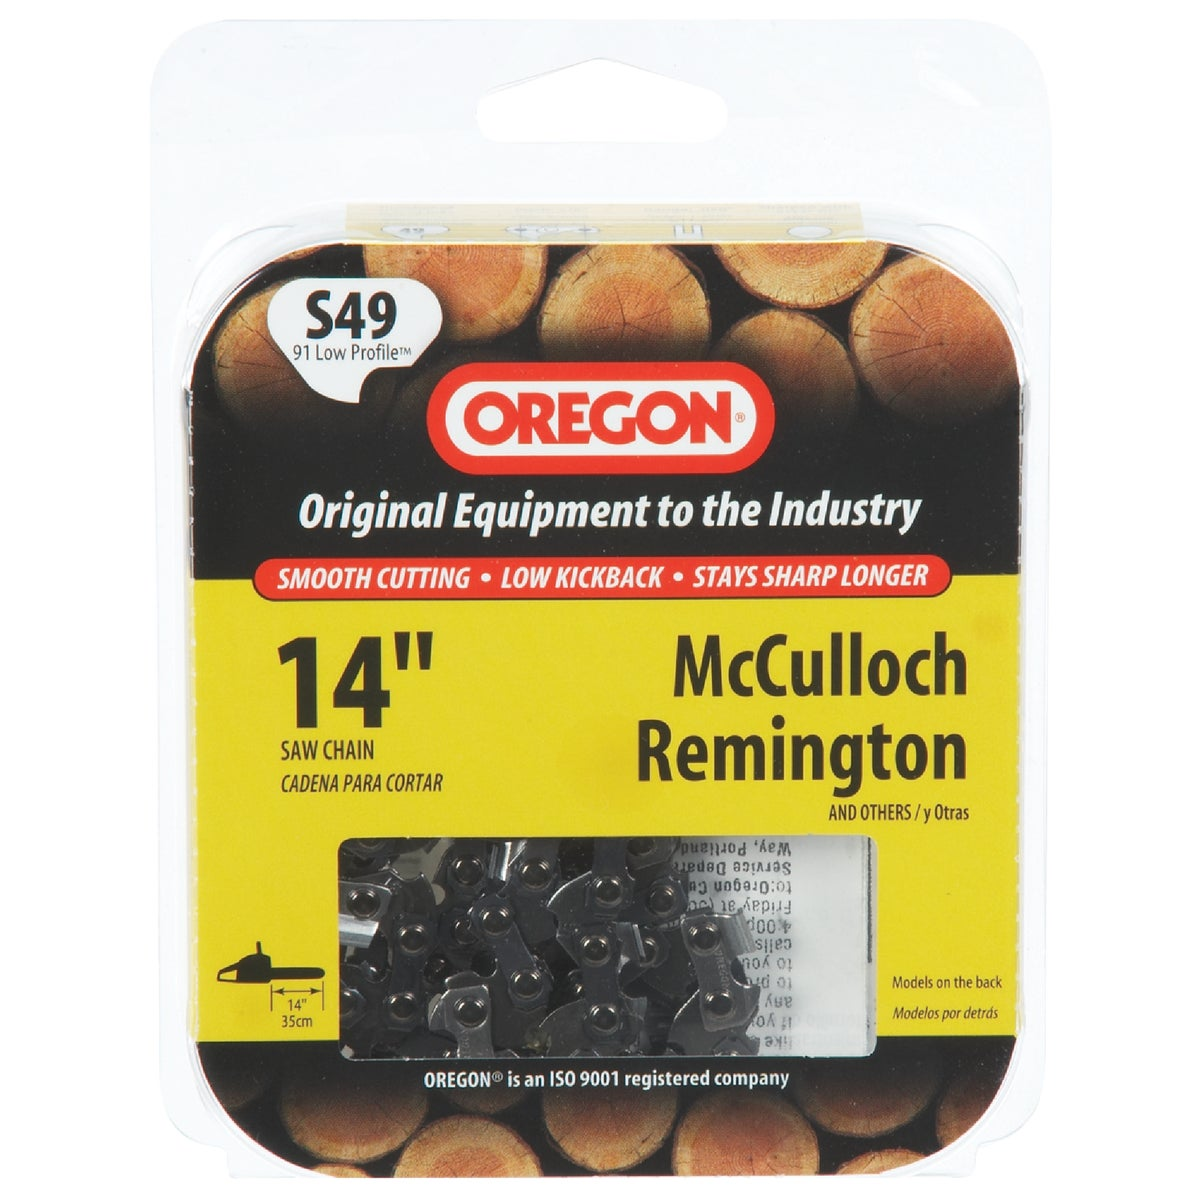 """Oregon S49 Replacement Chainsaw Chain Loops-14"""" REPL SAW CHAIN at Sears.com"""